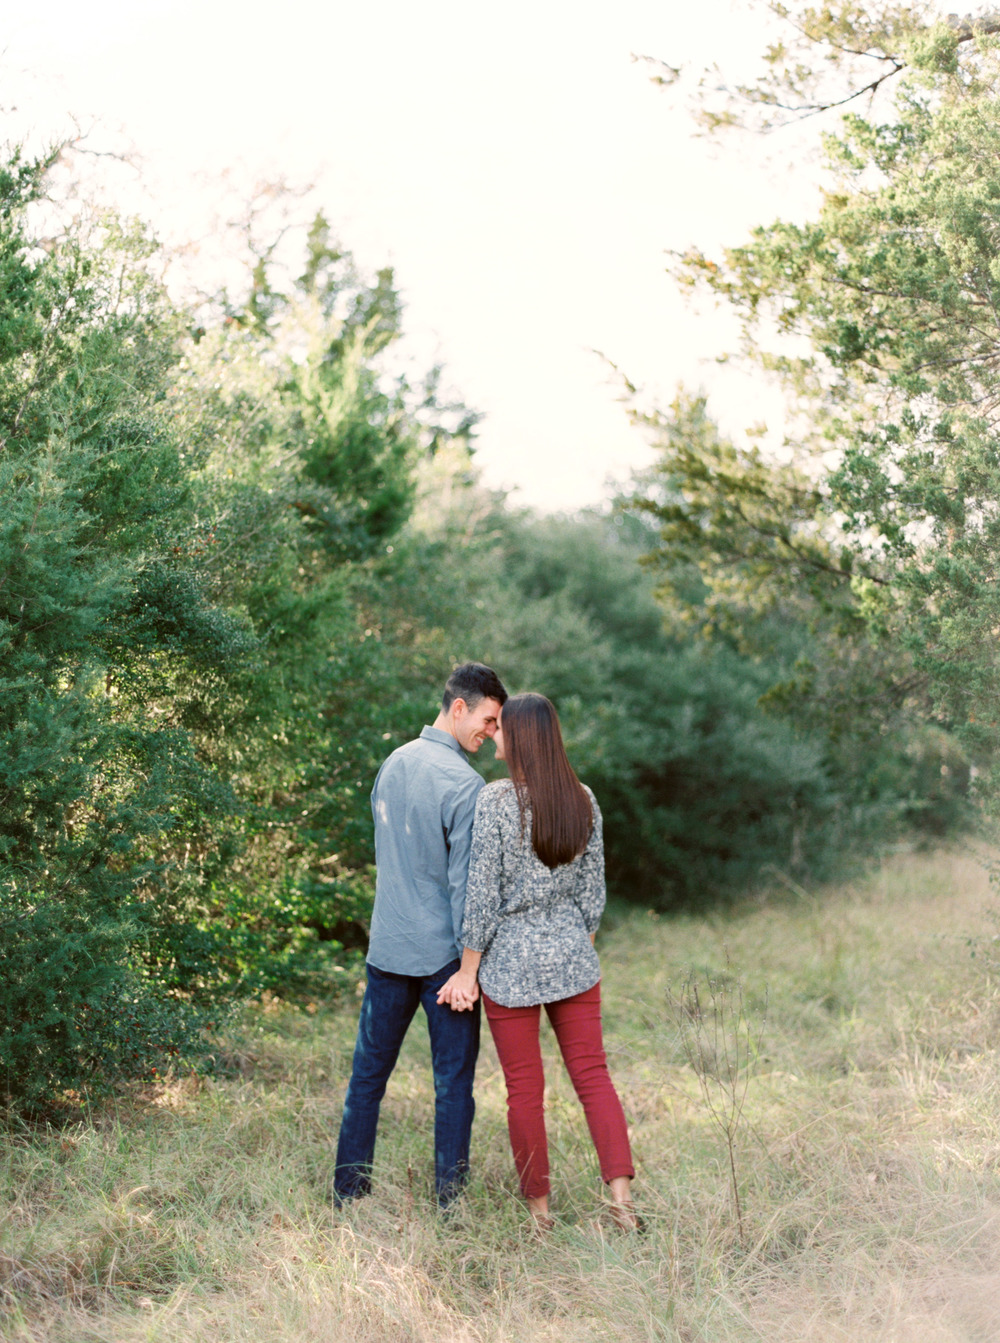 Sarah Best Photography - Brittany & Jonathan's Engagements-201.jpg